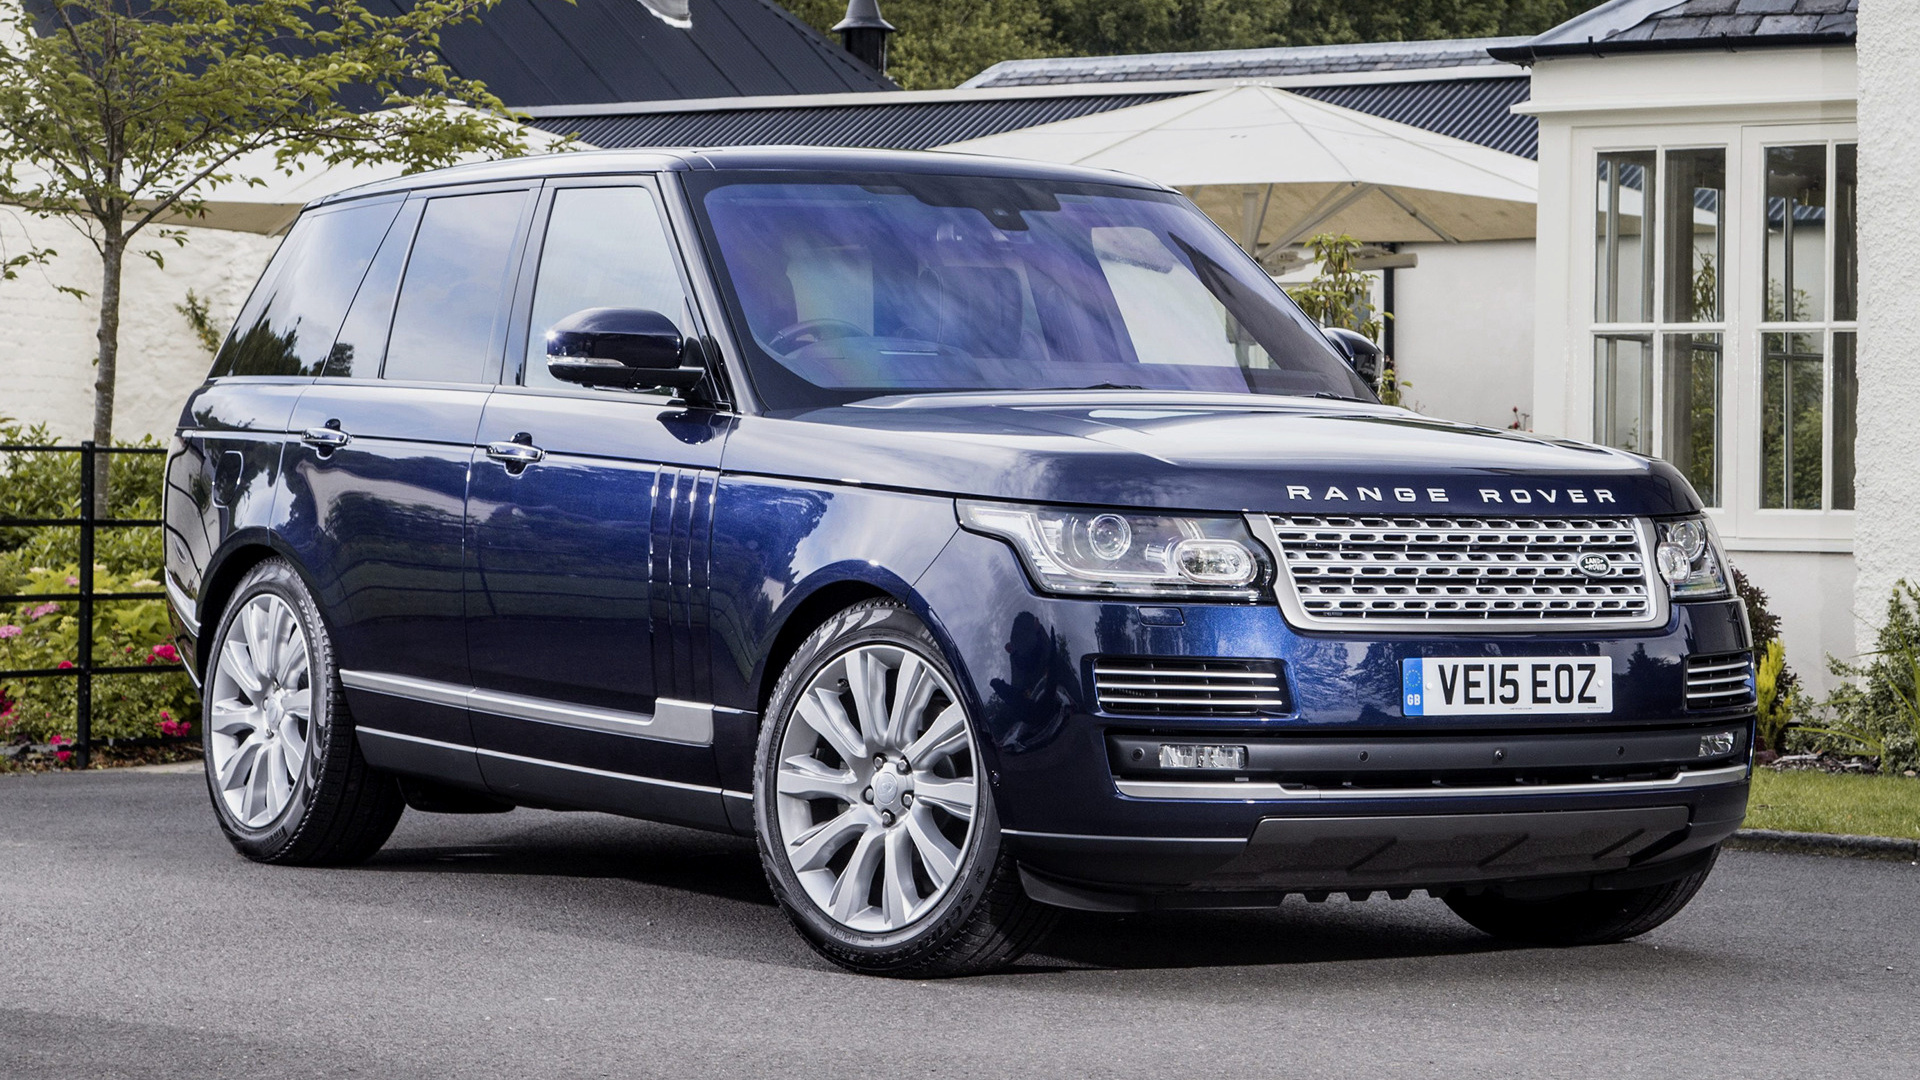 2012 range rover autobiography uk wallpapers and hd images car pixel. Black Bedroom Furniture Sets. Home Design Ideas